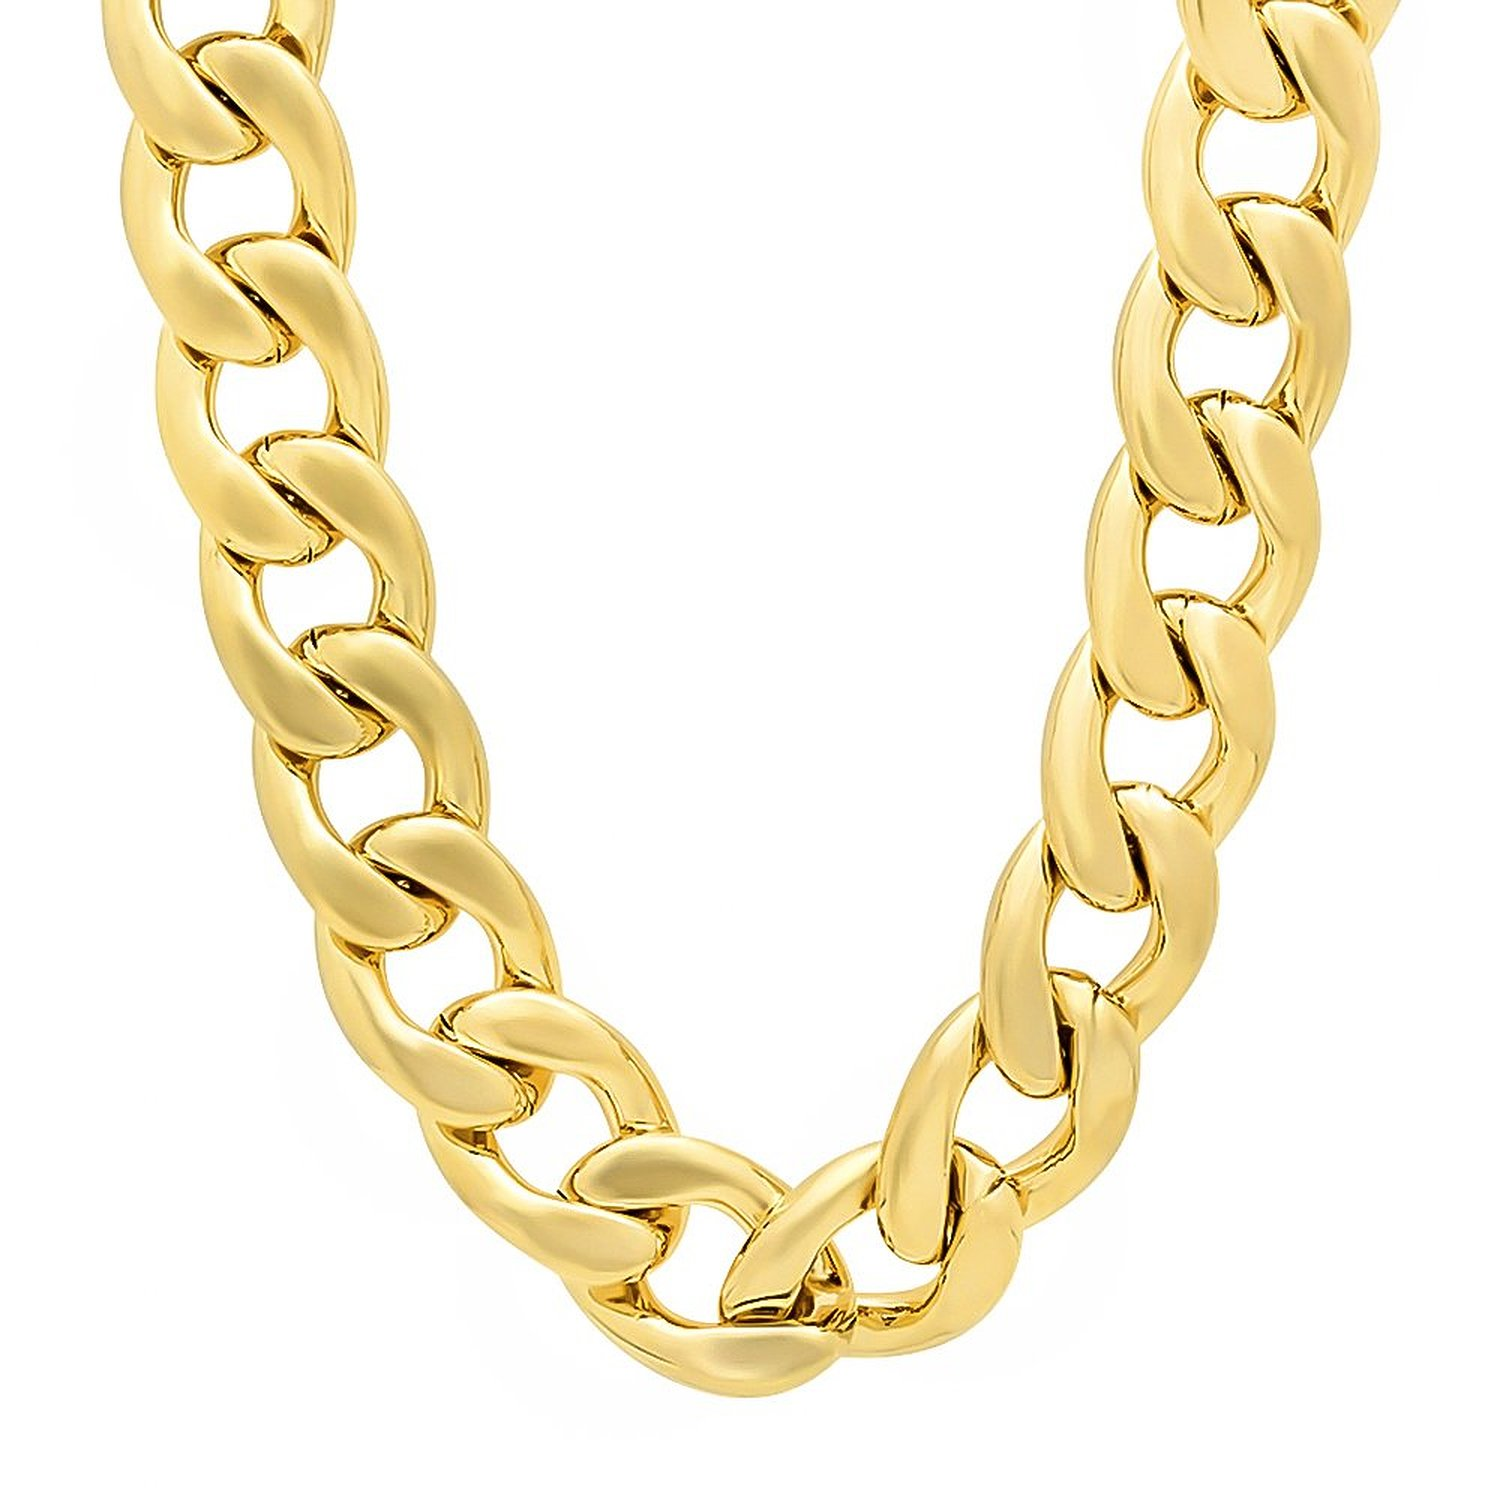 Amazon.com: 36 inch 20mm men's 14k gold plated cuban link curb chain necklace: jewelry